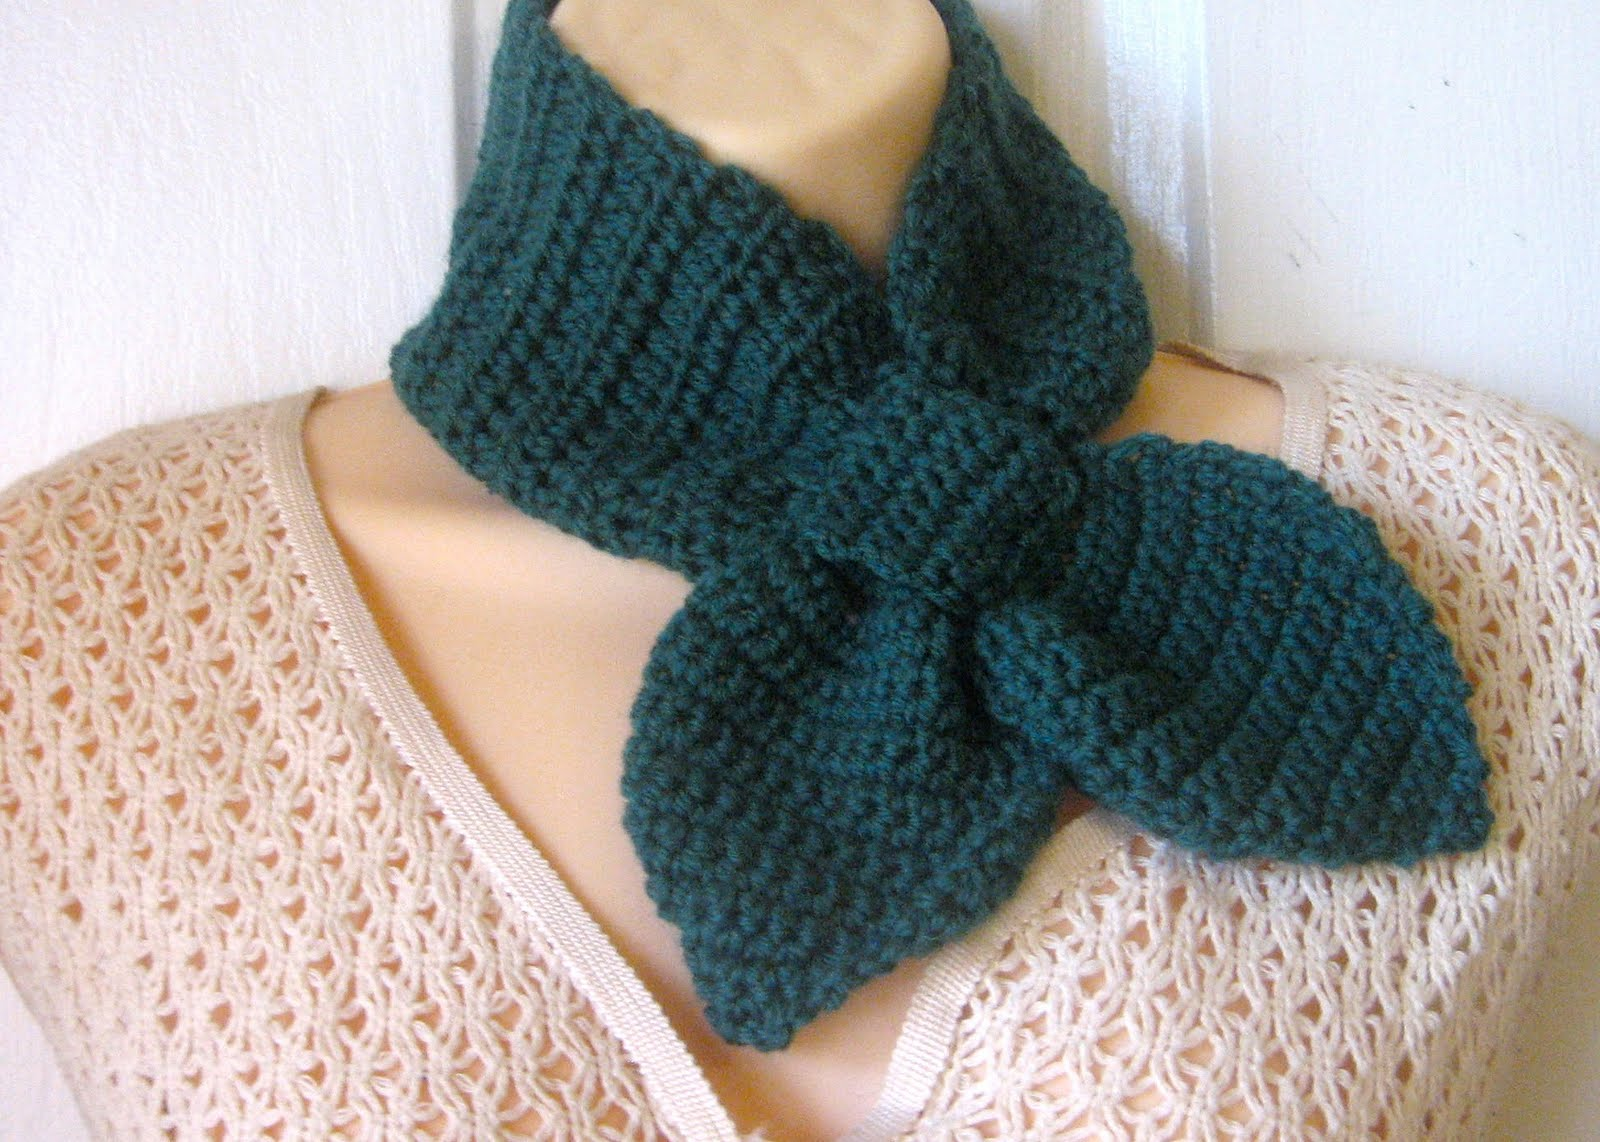 Crochet Patterns Neck Scarves : CROCHET PATTERN Popcorn Scarf Neck Warmer Wrap Button Up